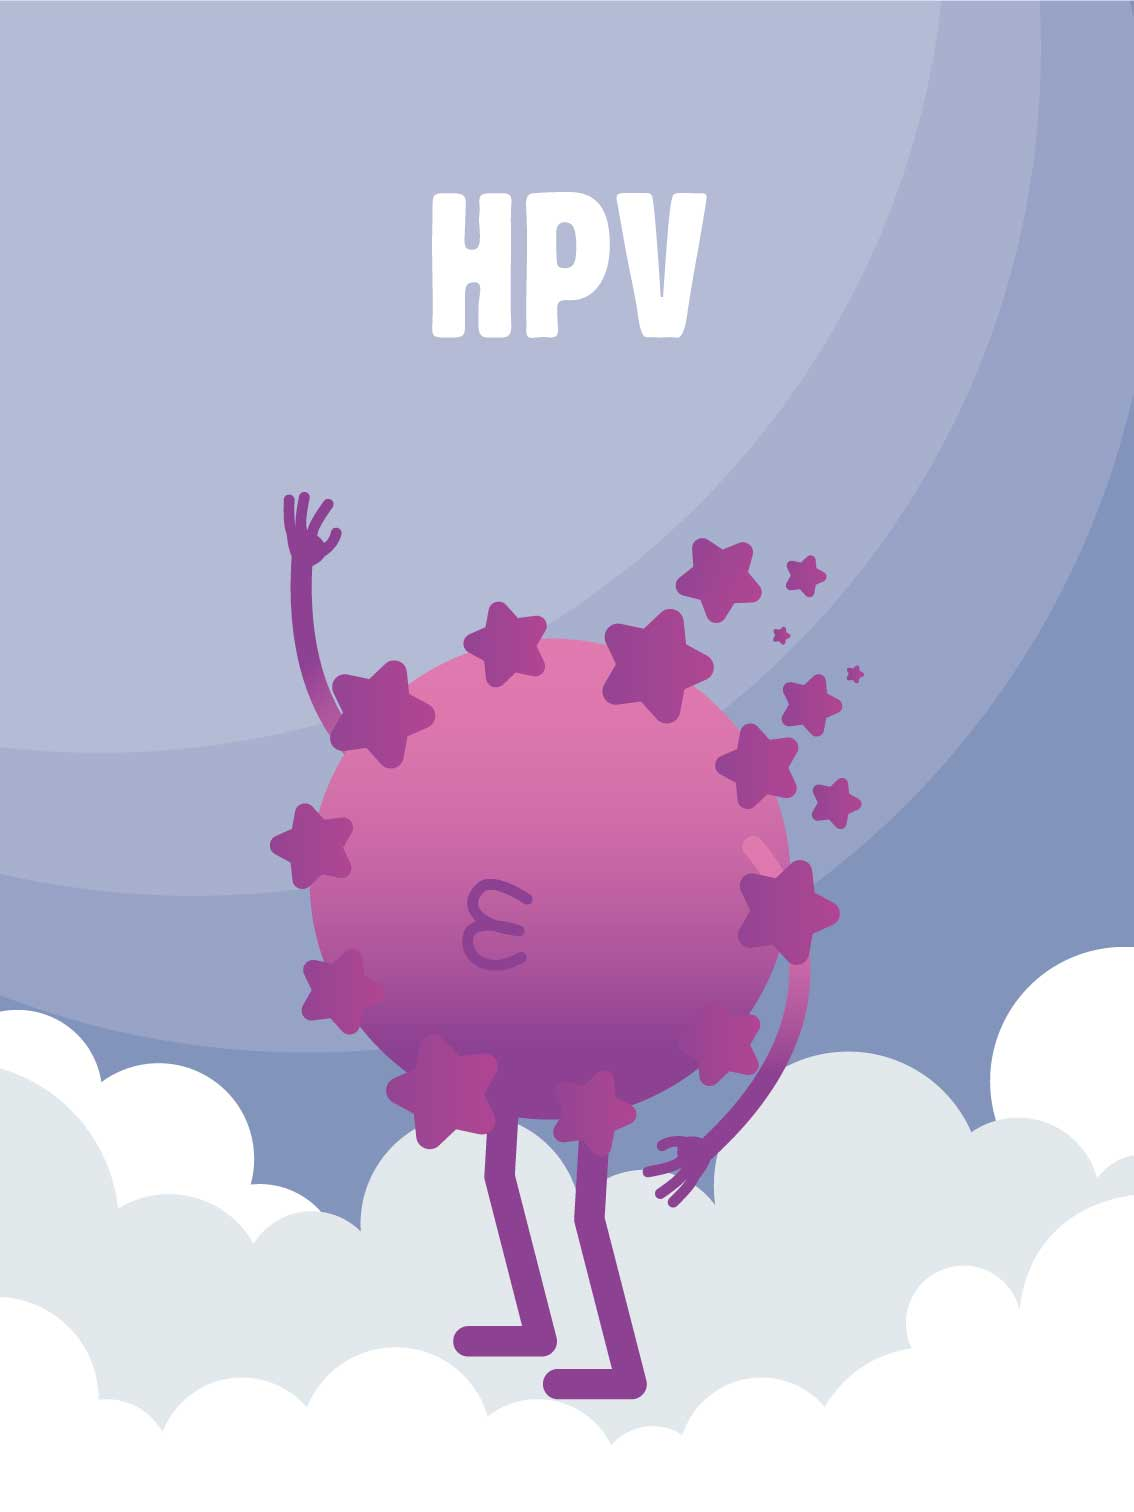 papilloma virus chez les hommes peritoneal cancer how long to live